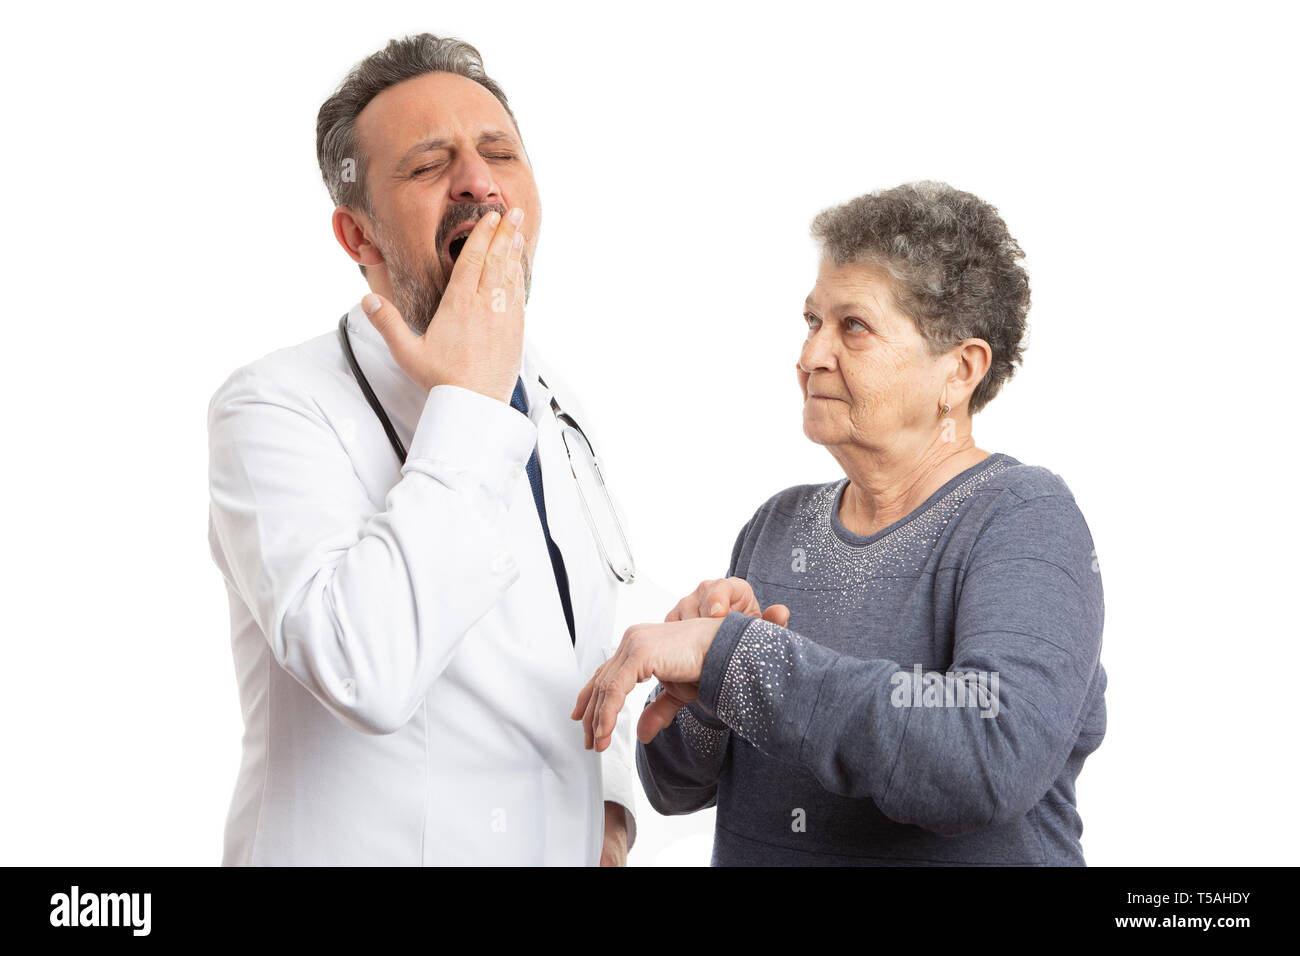 Old woman patient pointing with index finger at wrist for tired doctor yawning as late time concept isolated on white studio background - Stock Image